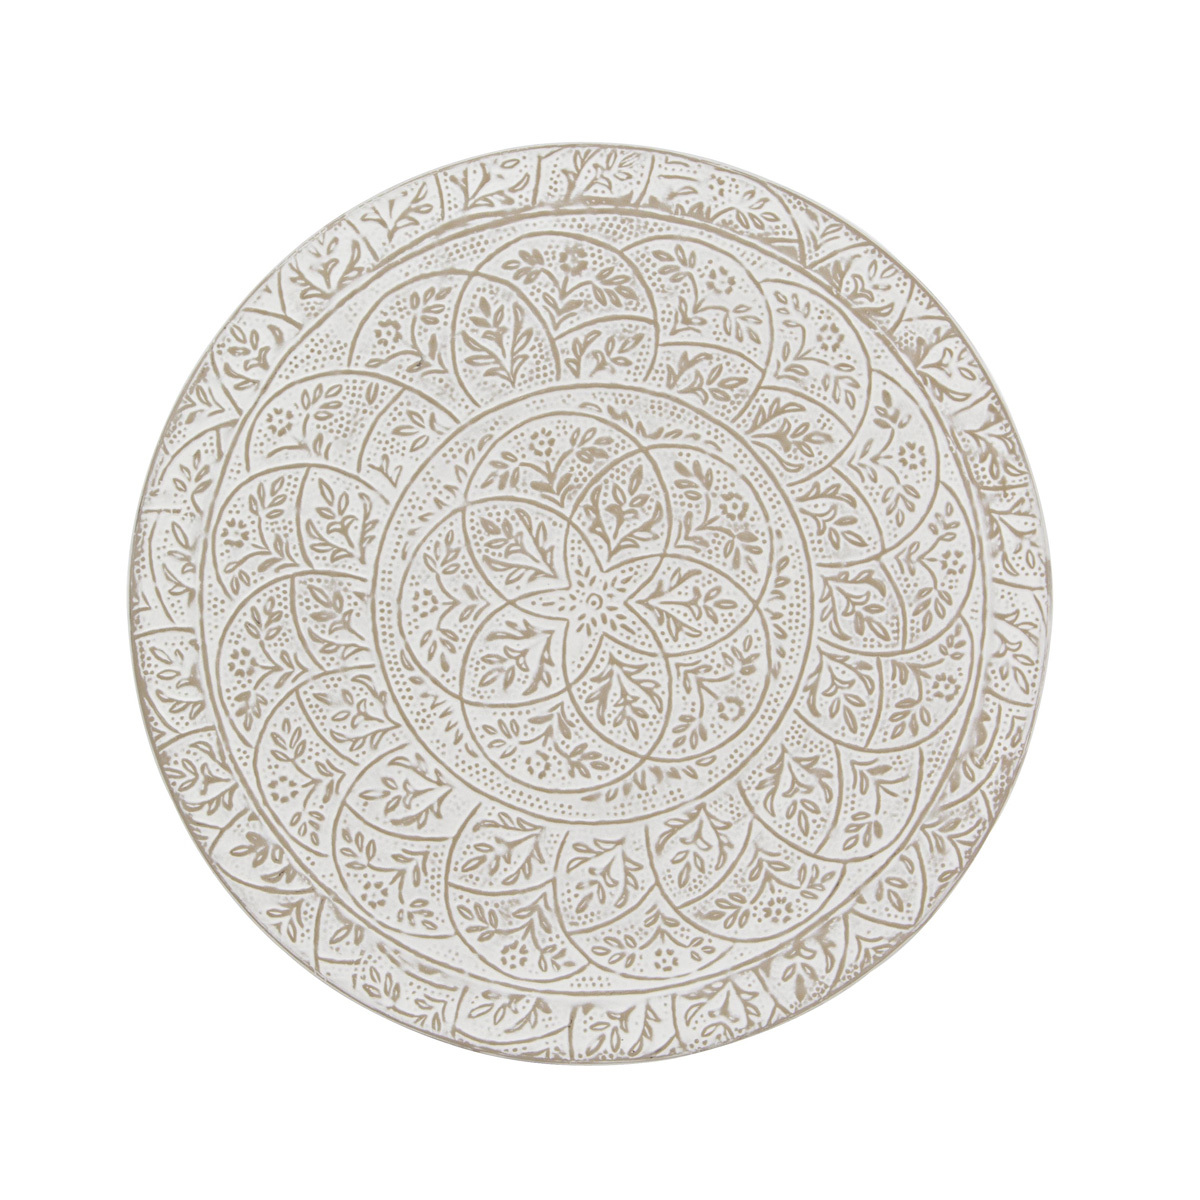 Photos 2: Bizzotto Round table in metal d. 70 0746053